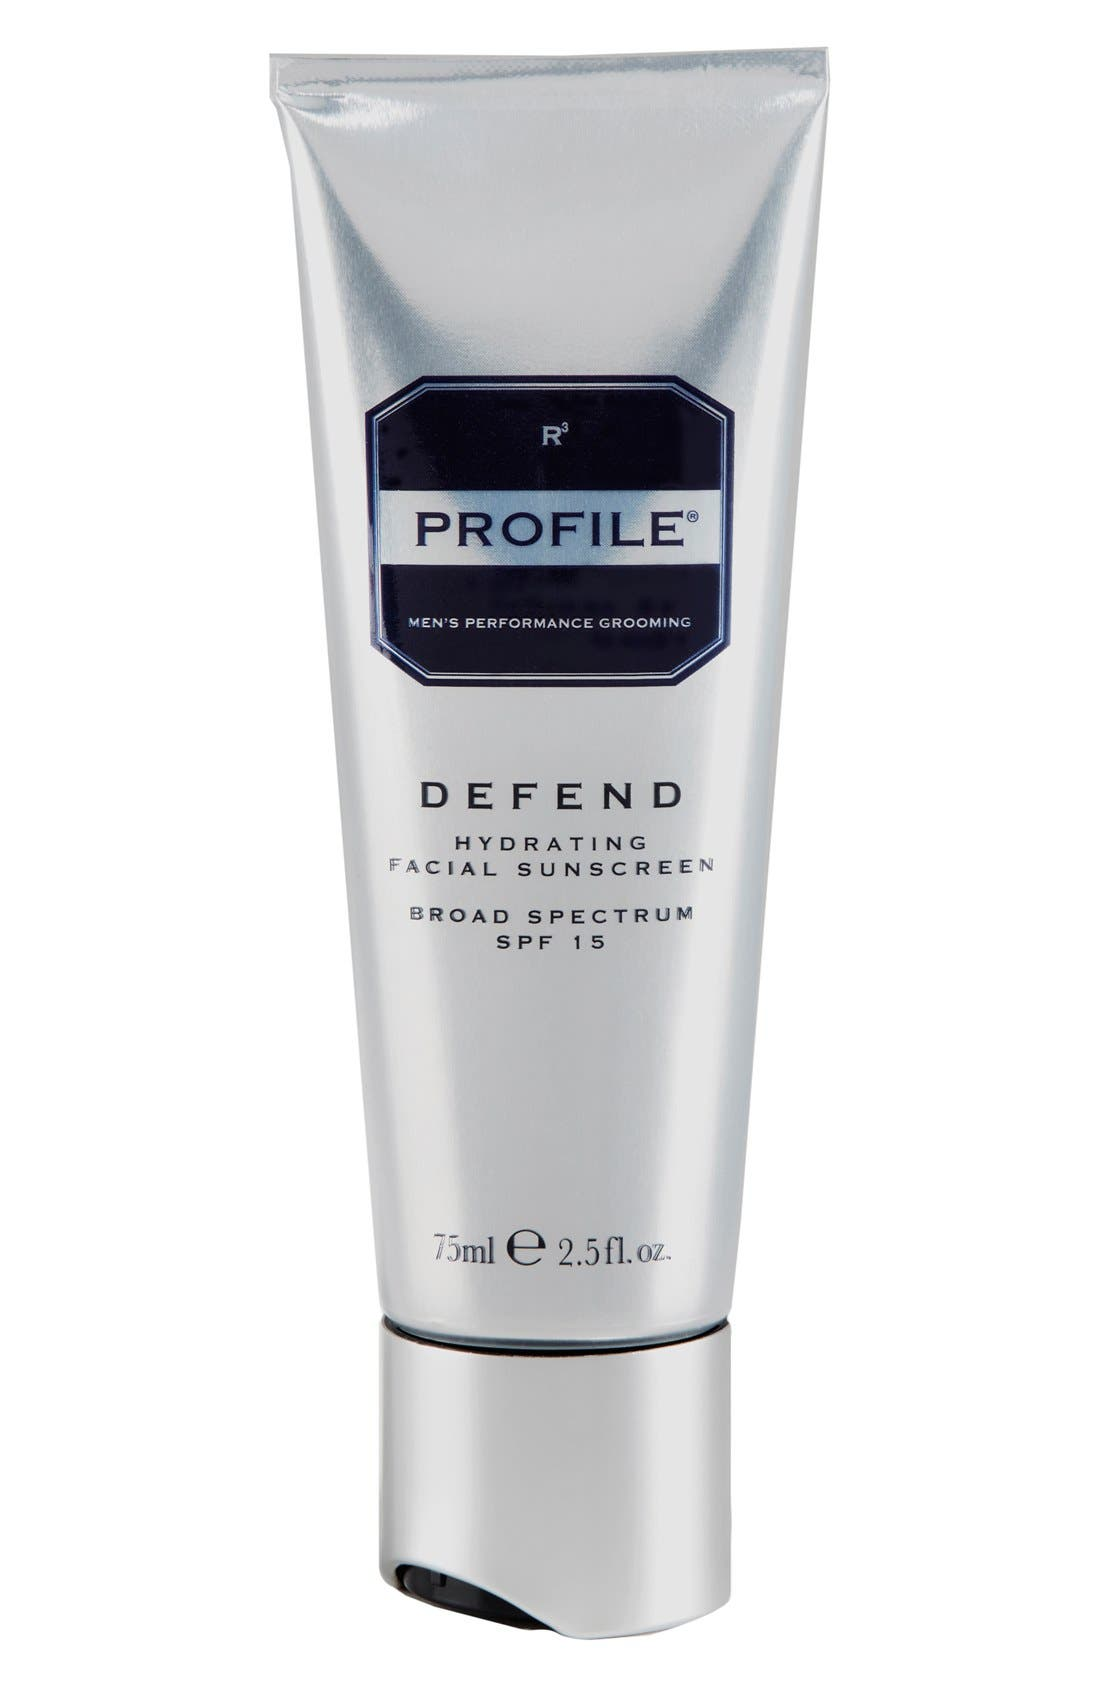 PROFILE® 'Defend' Hydrating Facial Sunscreen Broad Spectrum SPF 15